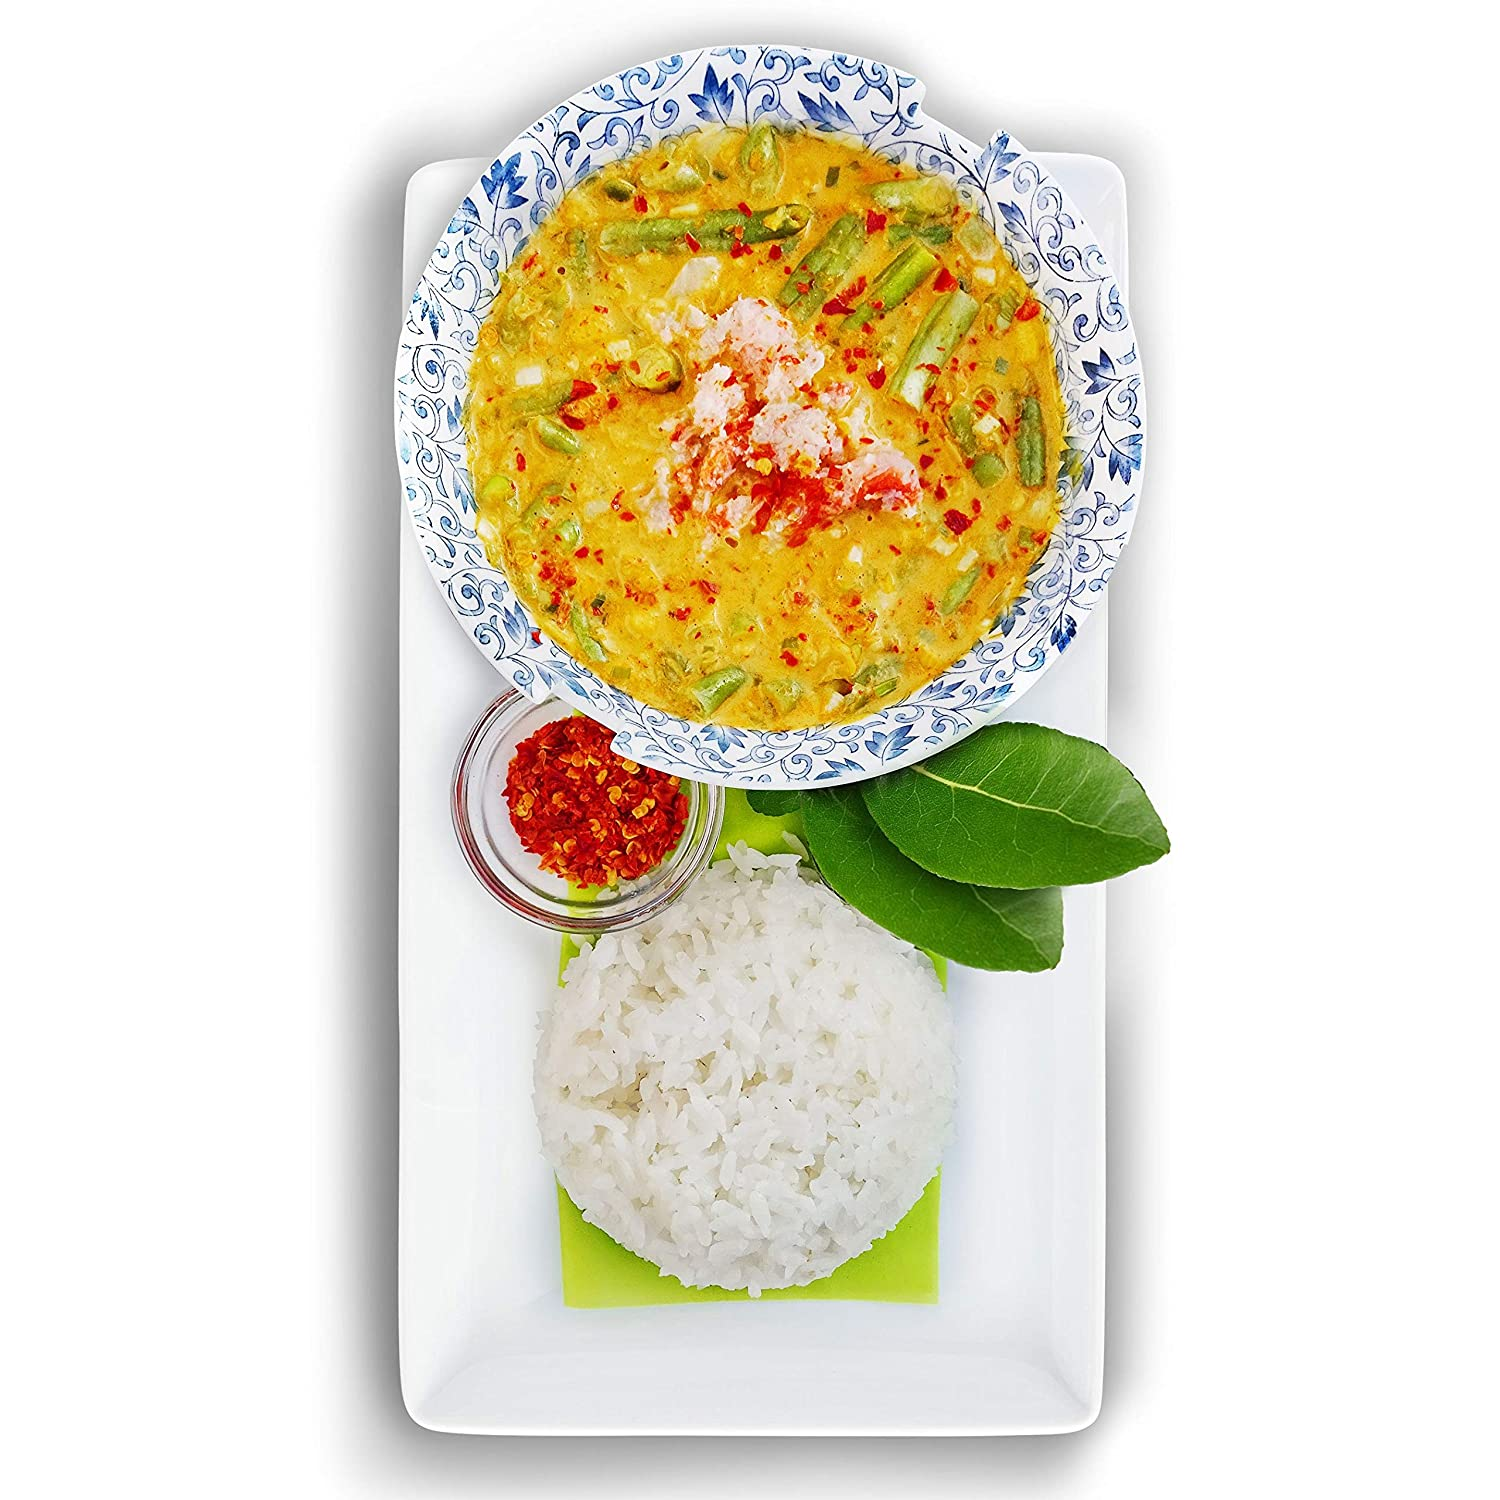 Takeout Kit, Thai Crab Curry Pantry Meal Kit, Serves 4 91nSRIeYxNL